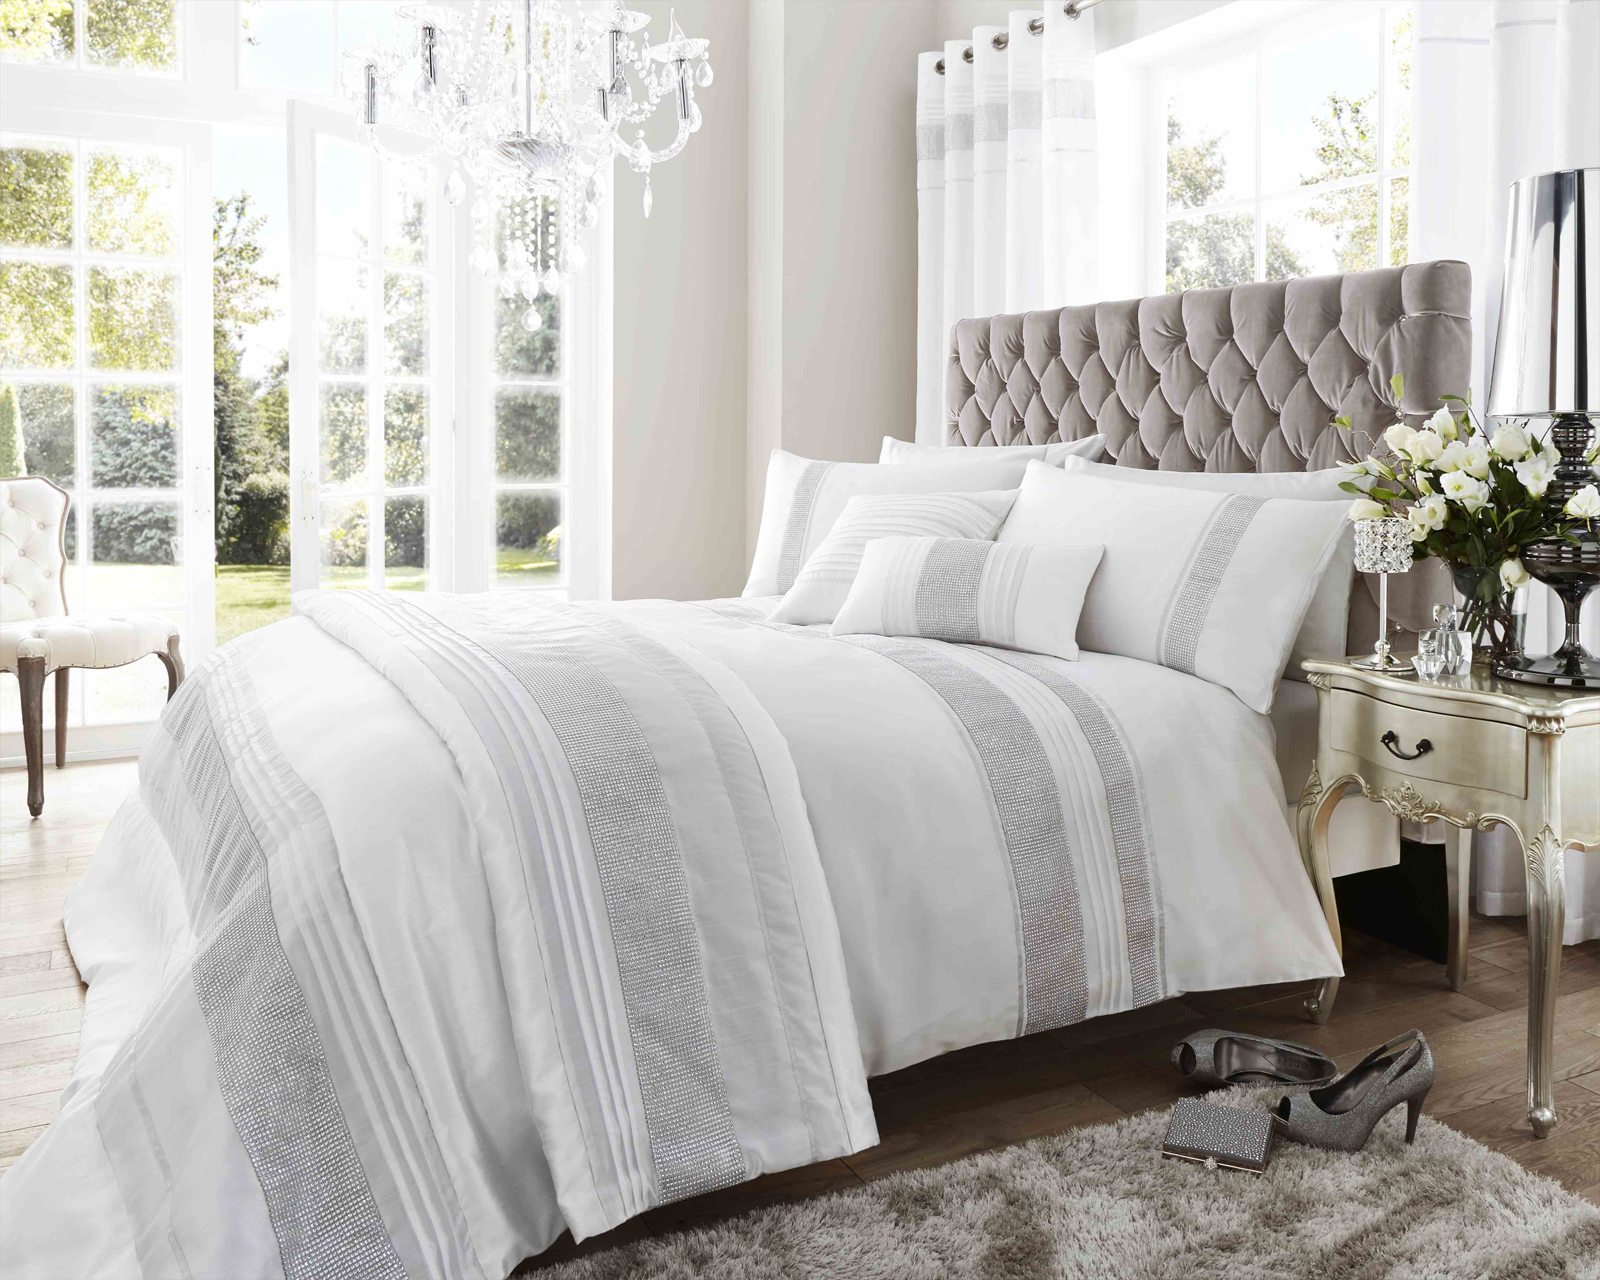 Dallas Collection Diamante Bedding Set in White